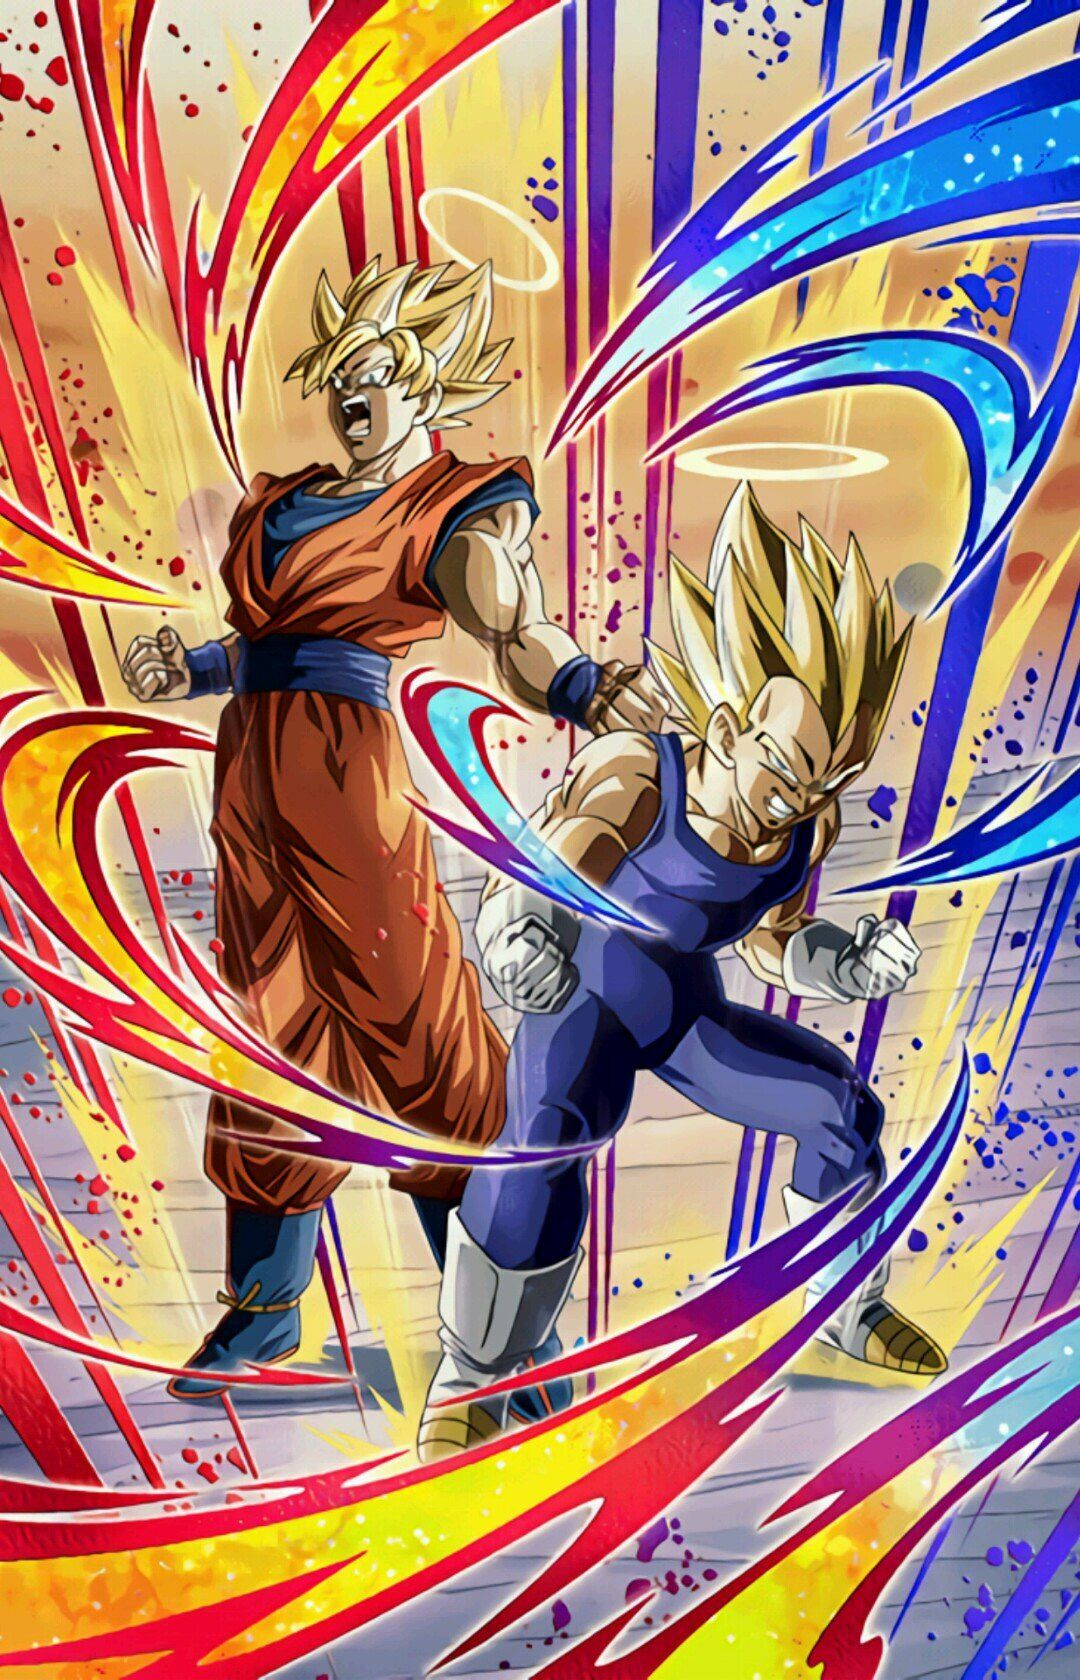 Lr Angel Goku And Vegeta Dragon Ball Z Dokkan Battle Dragon Ball Artwork Anime Dragon Ball Super Dragon Ball Wallpapers